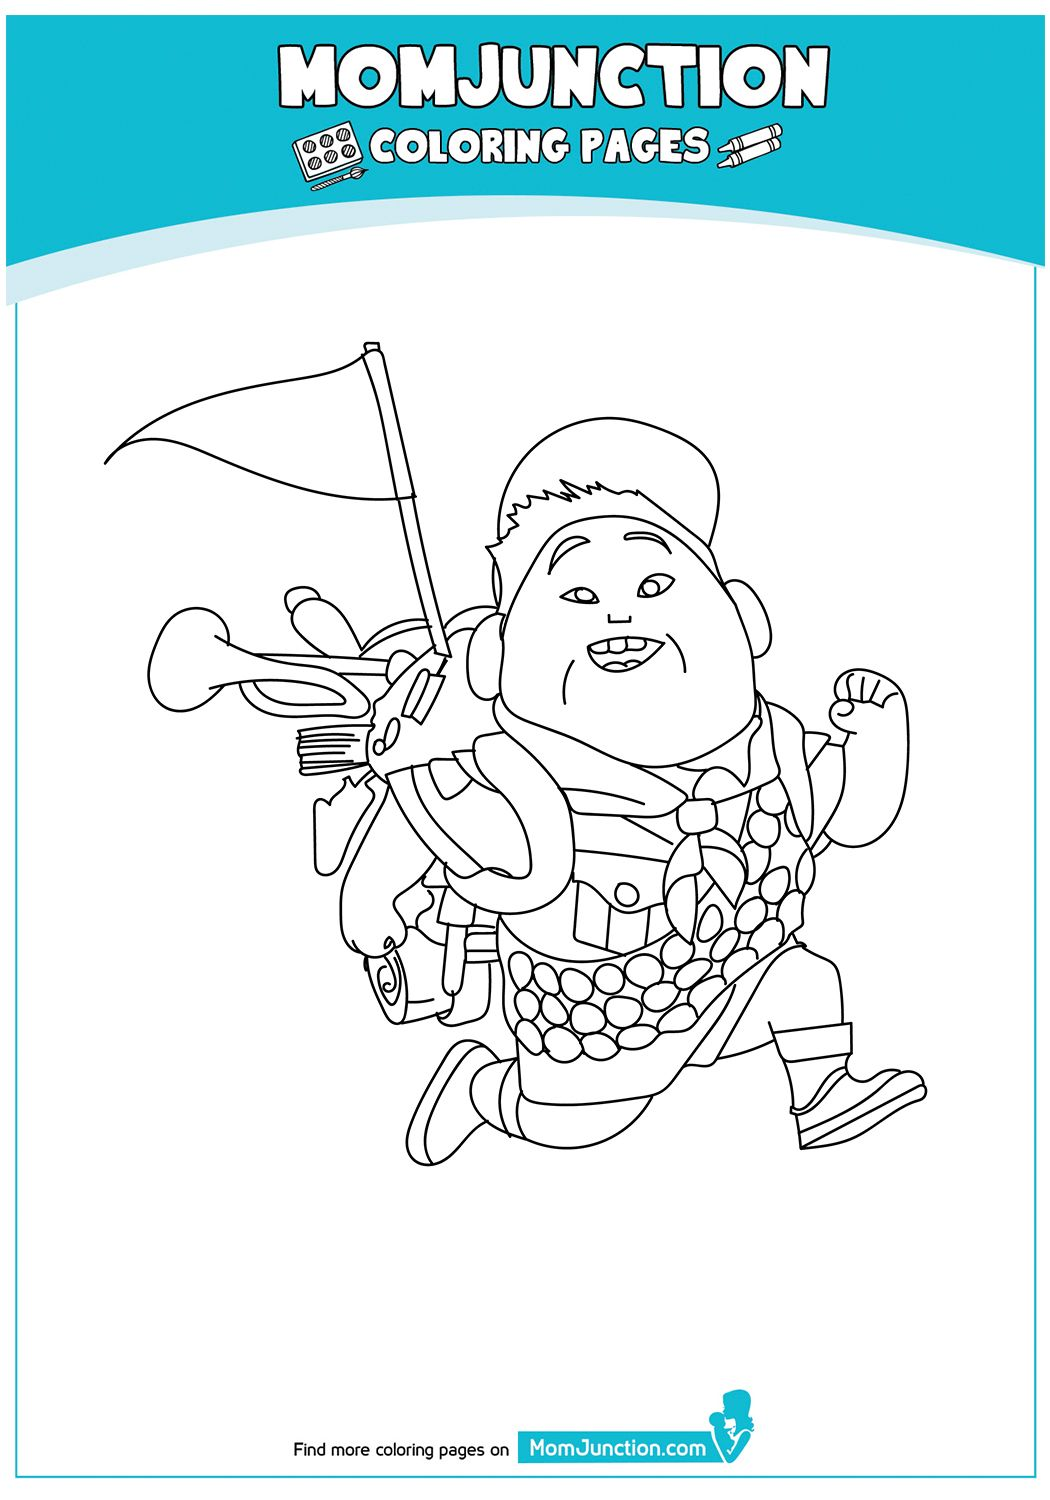 print coloring image - MomJunction | Coloring pages, Color ...